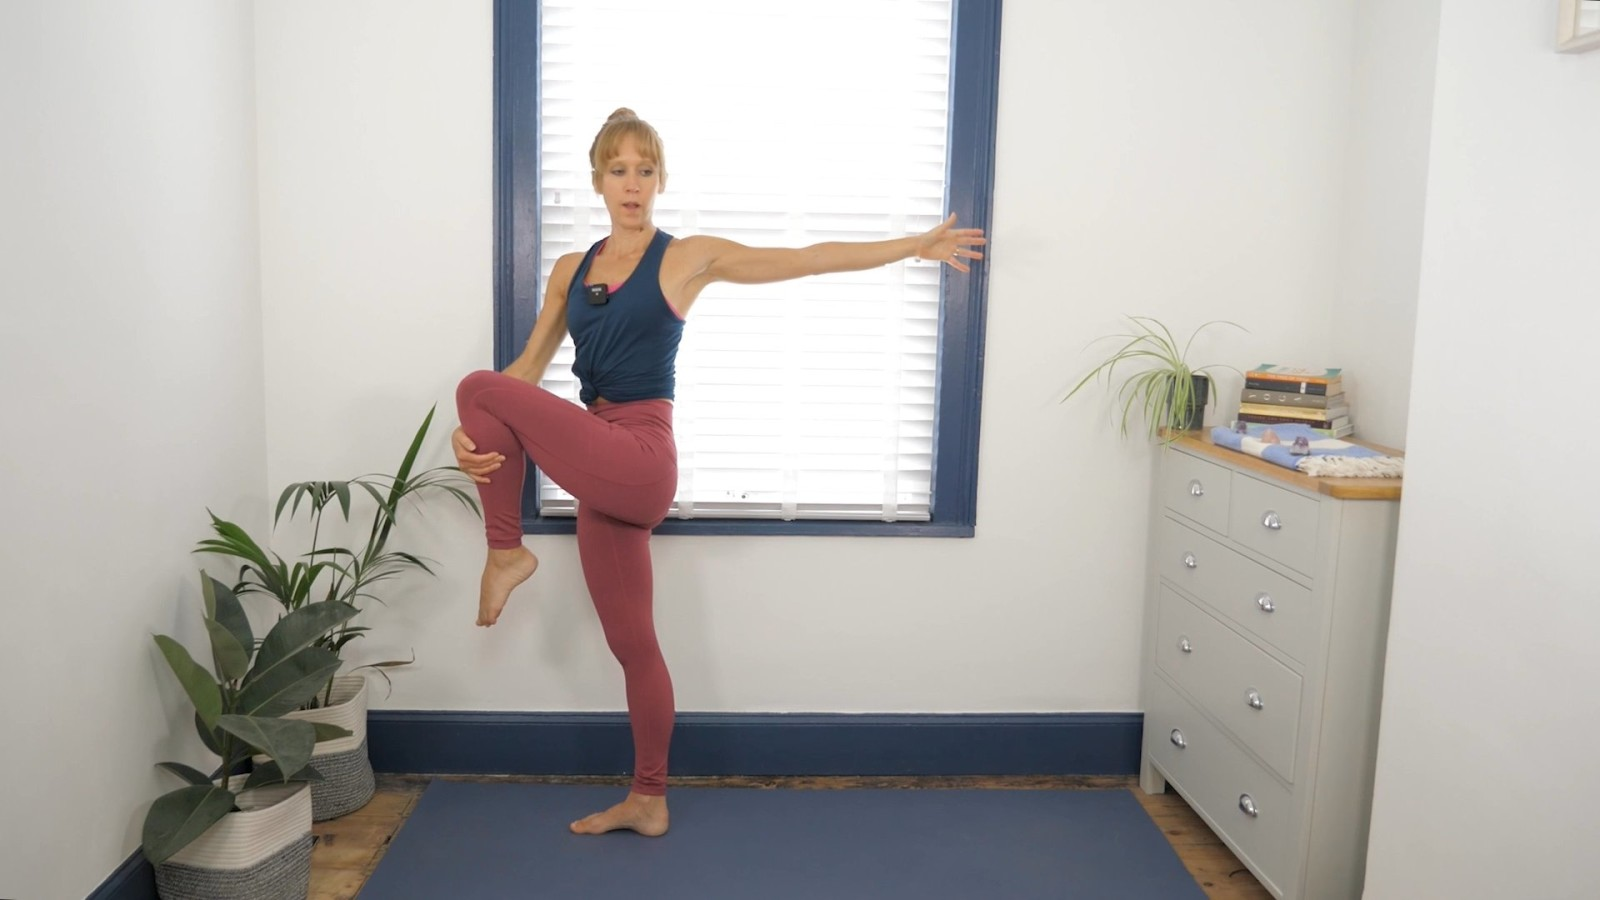 Yoga Conditioning - Strengthen & Sculpt with Rebecca Capewell-Lloyd